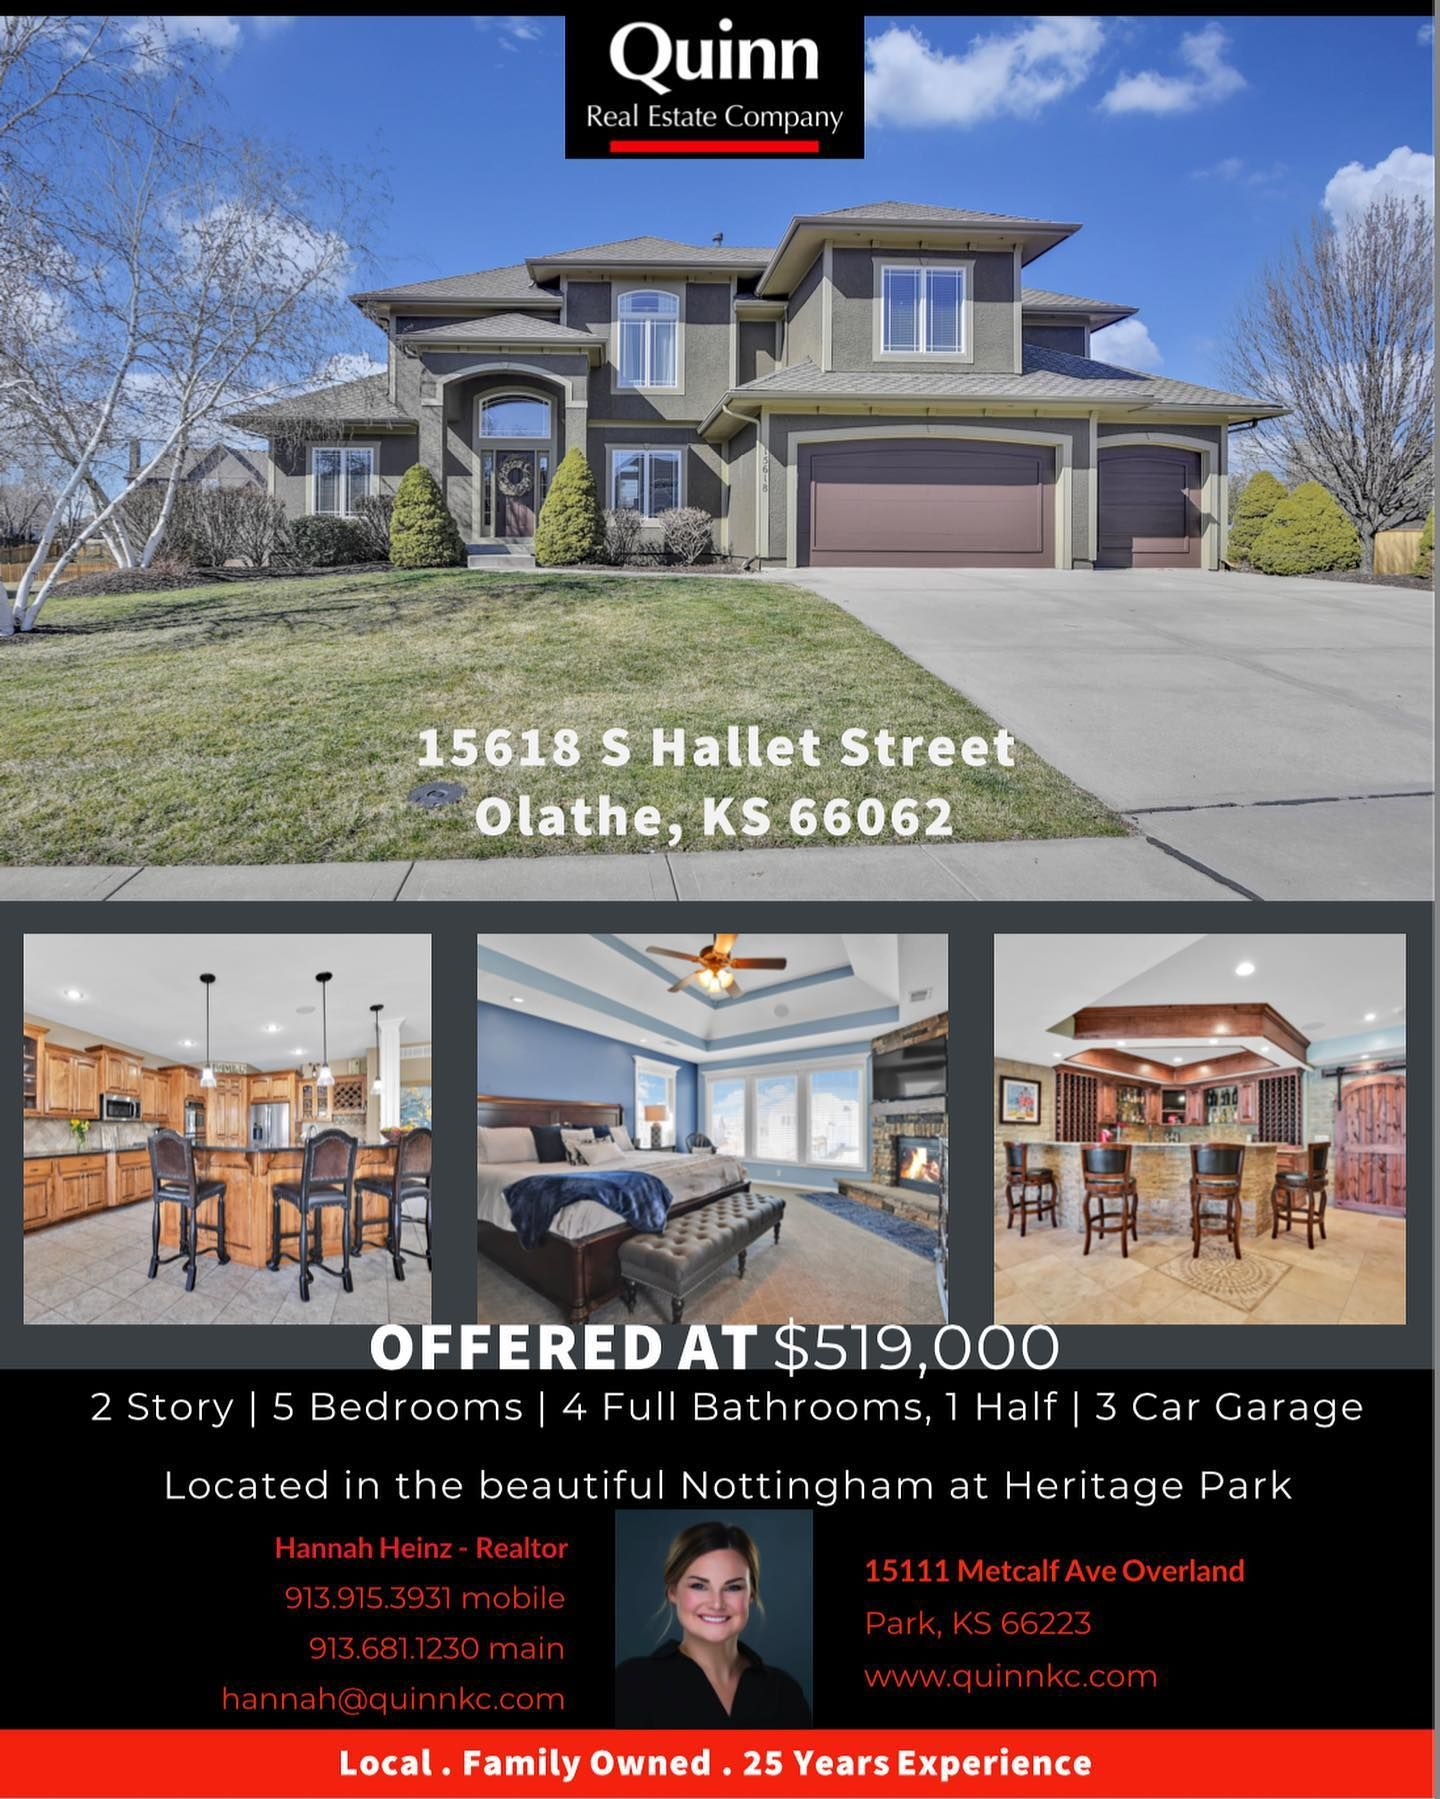 Just Listed This Beautiful 2 Story Home In Nottingham At Heritage Park Is Fresh On The Market And Won T In 2020 Overland Park Ks Overland Park Real Estate Companies